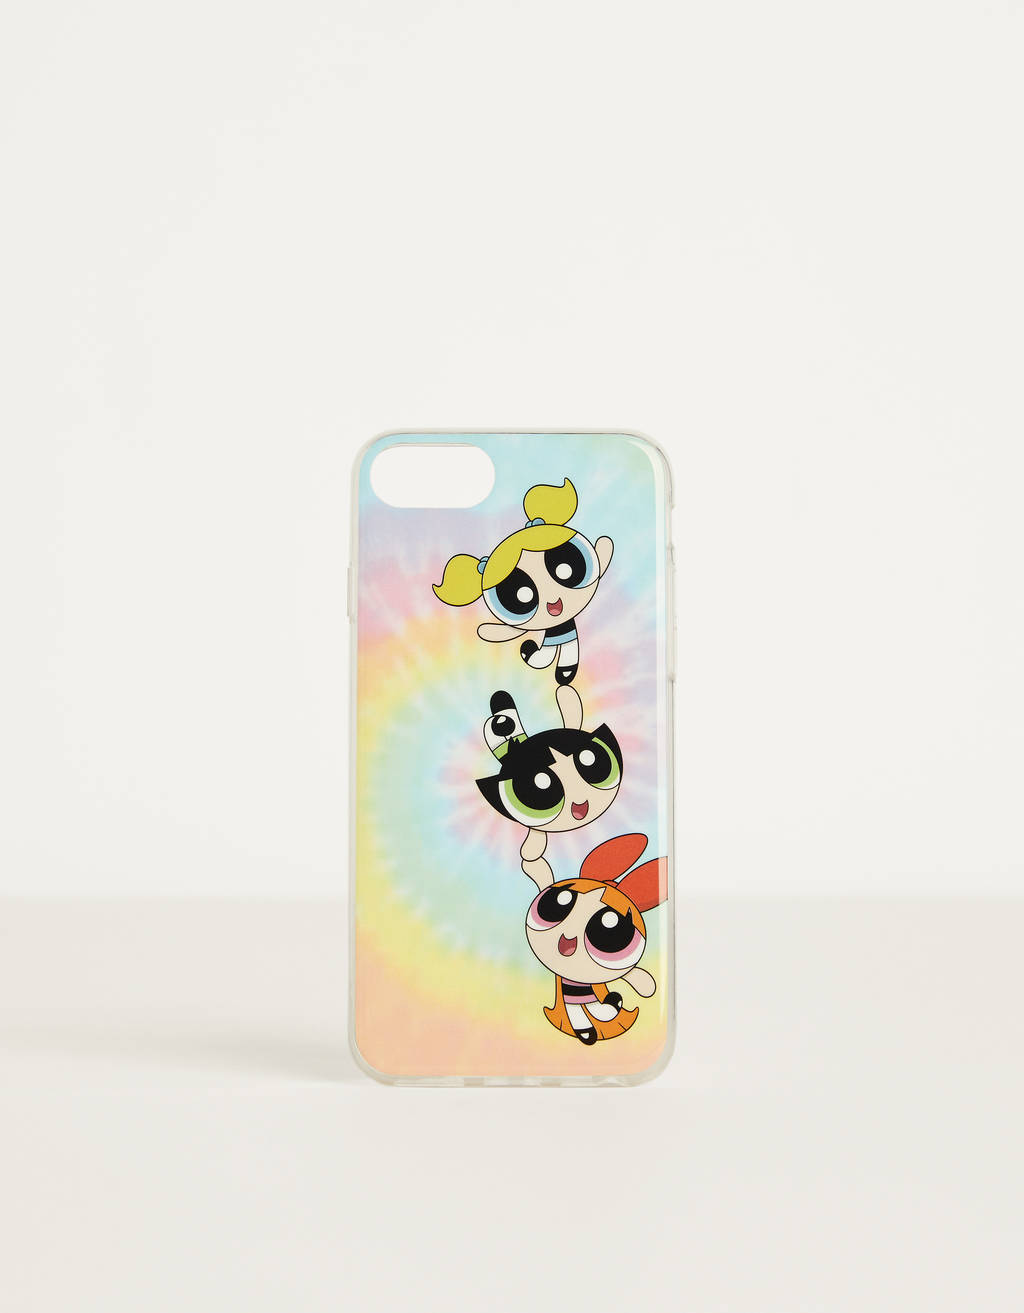 The Powerpuff Girls x Bershka hoesje voor iPhone 6 / 6S / 7 / 8